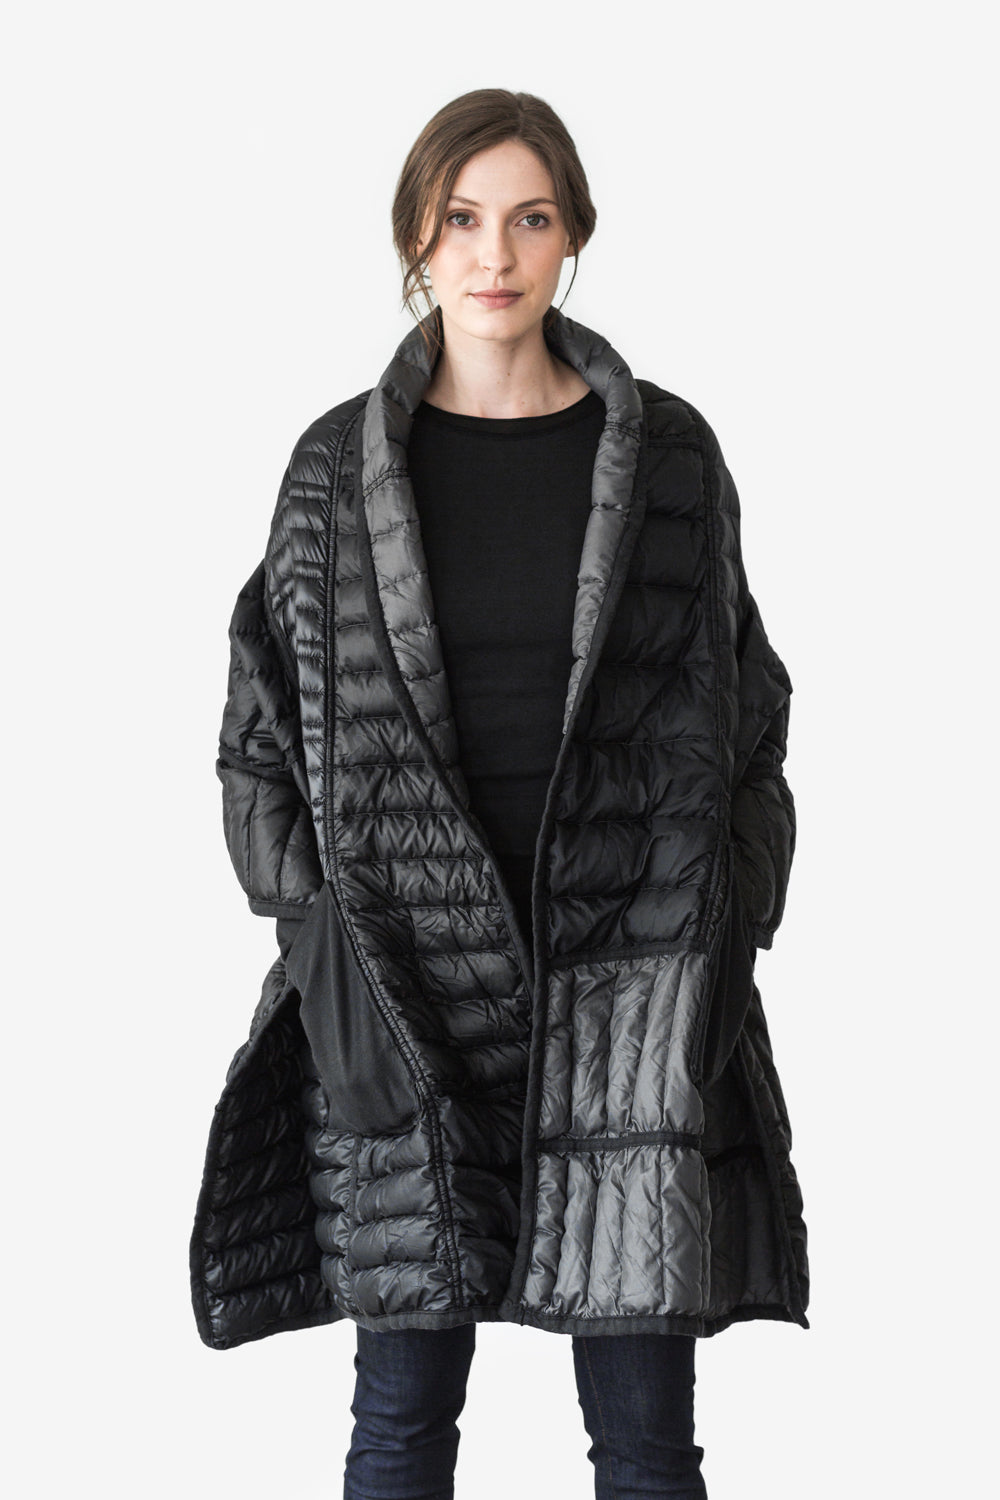 Alabama Chanin Reclaimed Down Wrap in Black Sustainable Upcycled from Down Jackets One of a Kind Sewn in Alabama